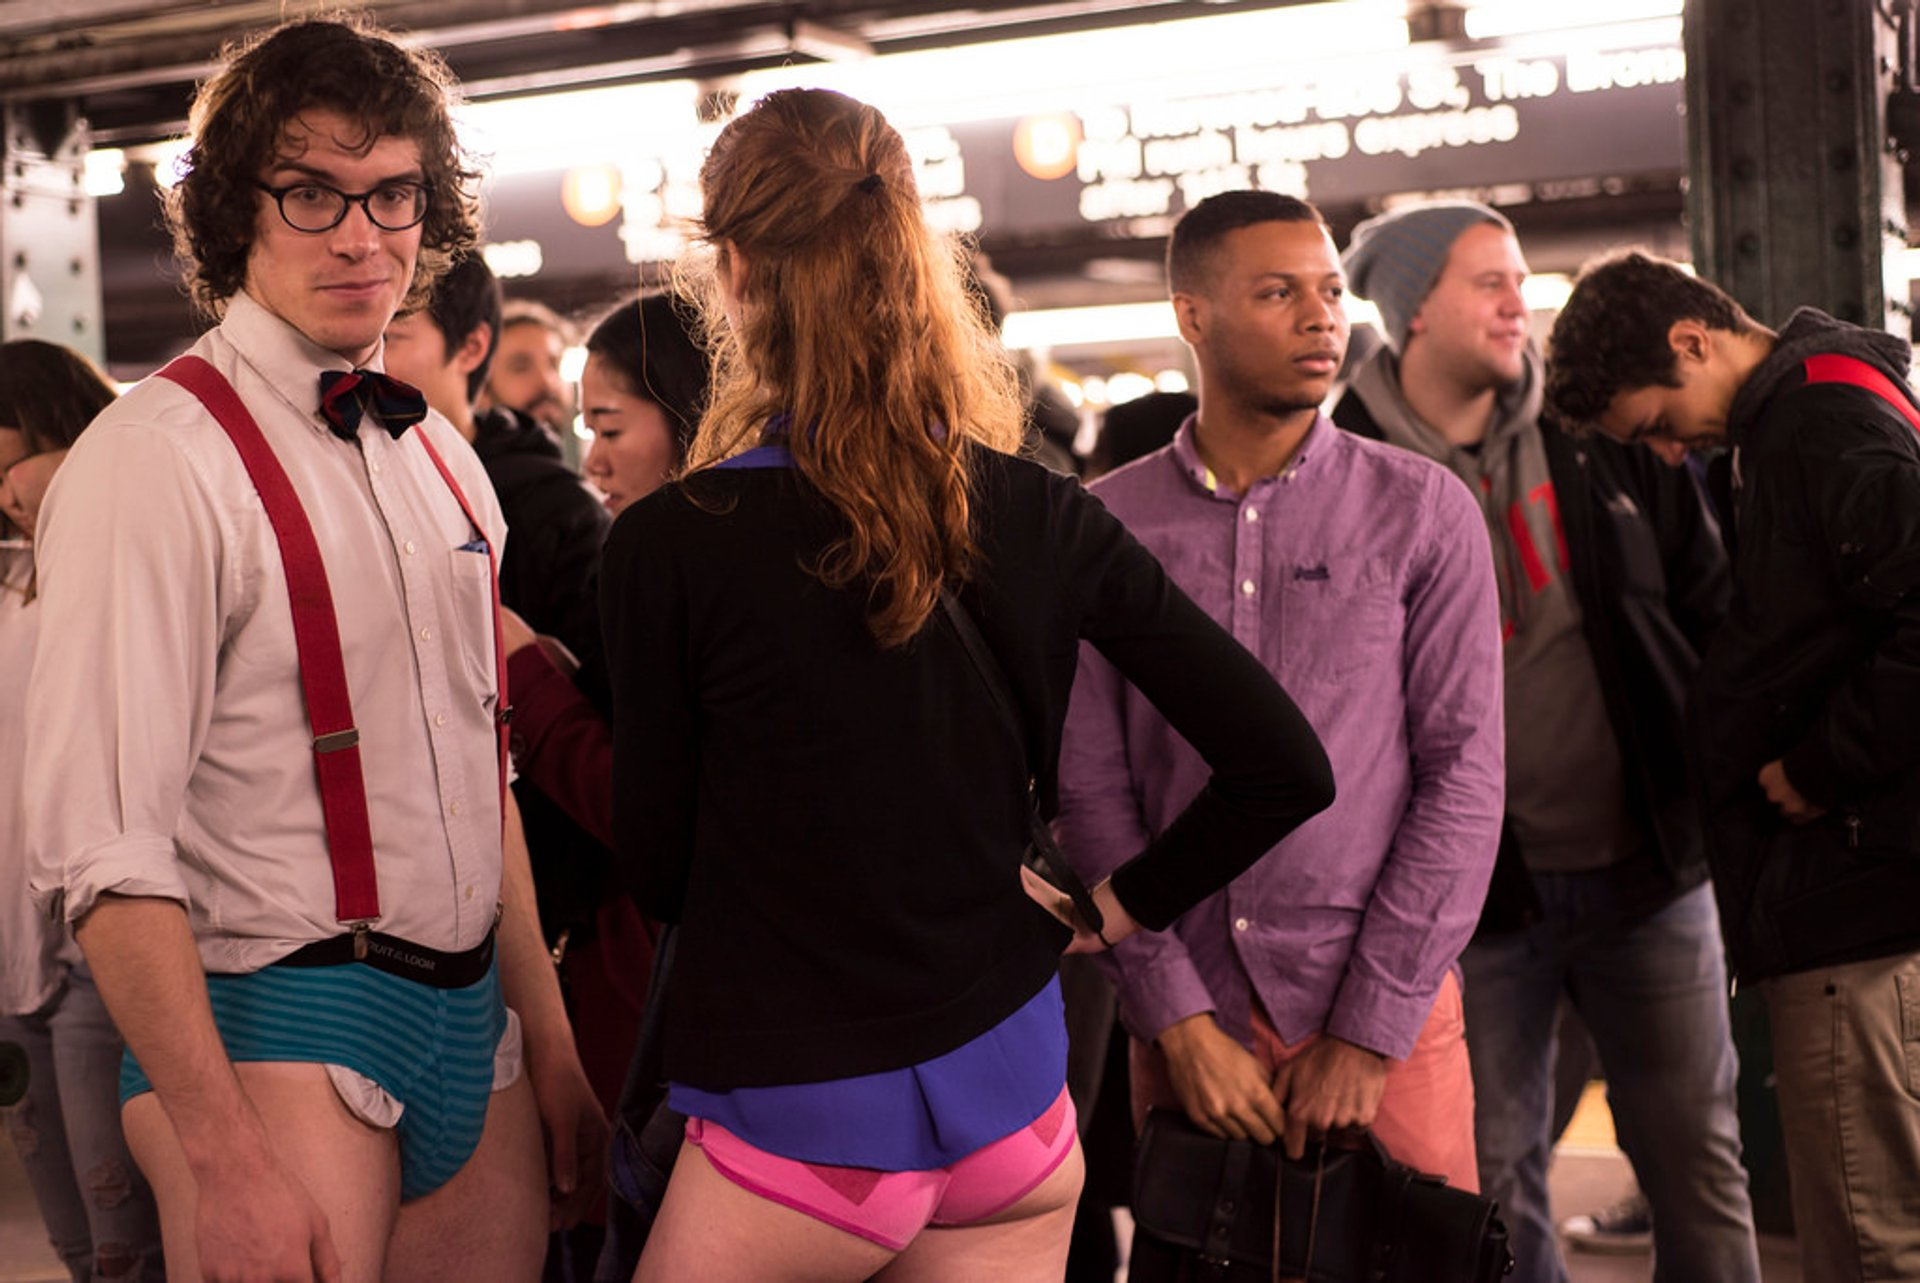 No Pants Subway Ride in New York - Best Season